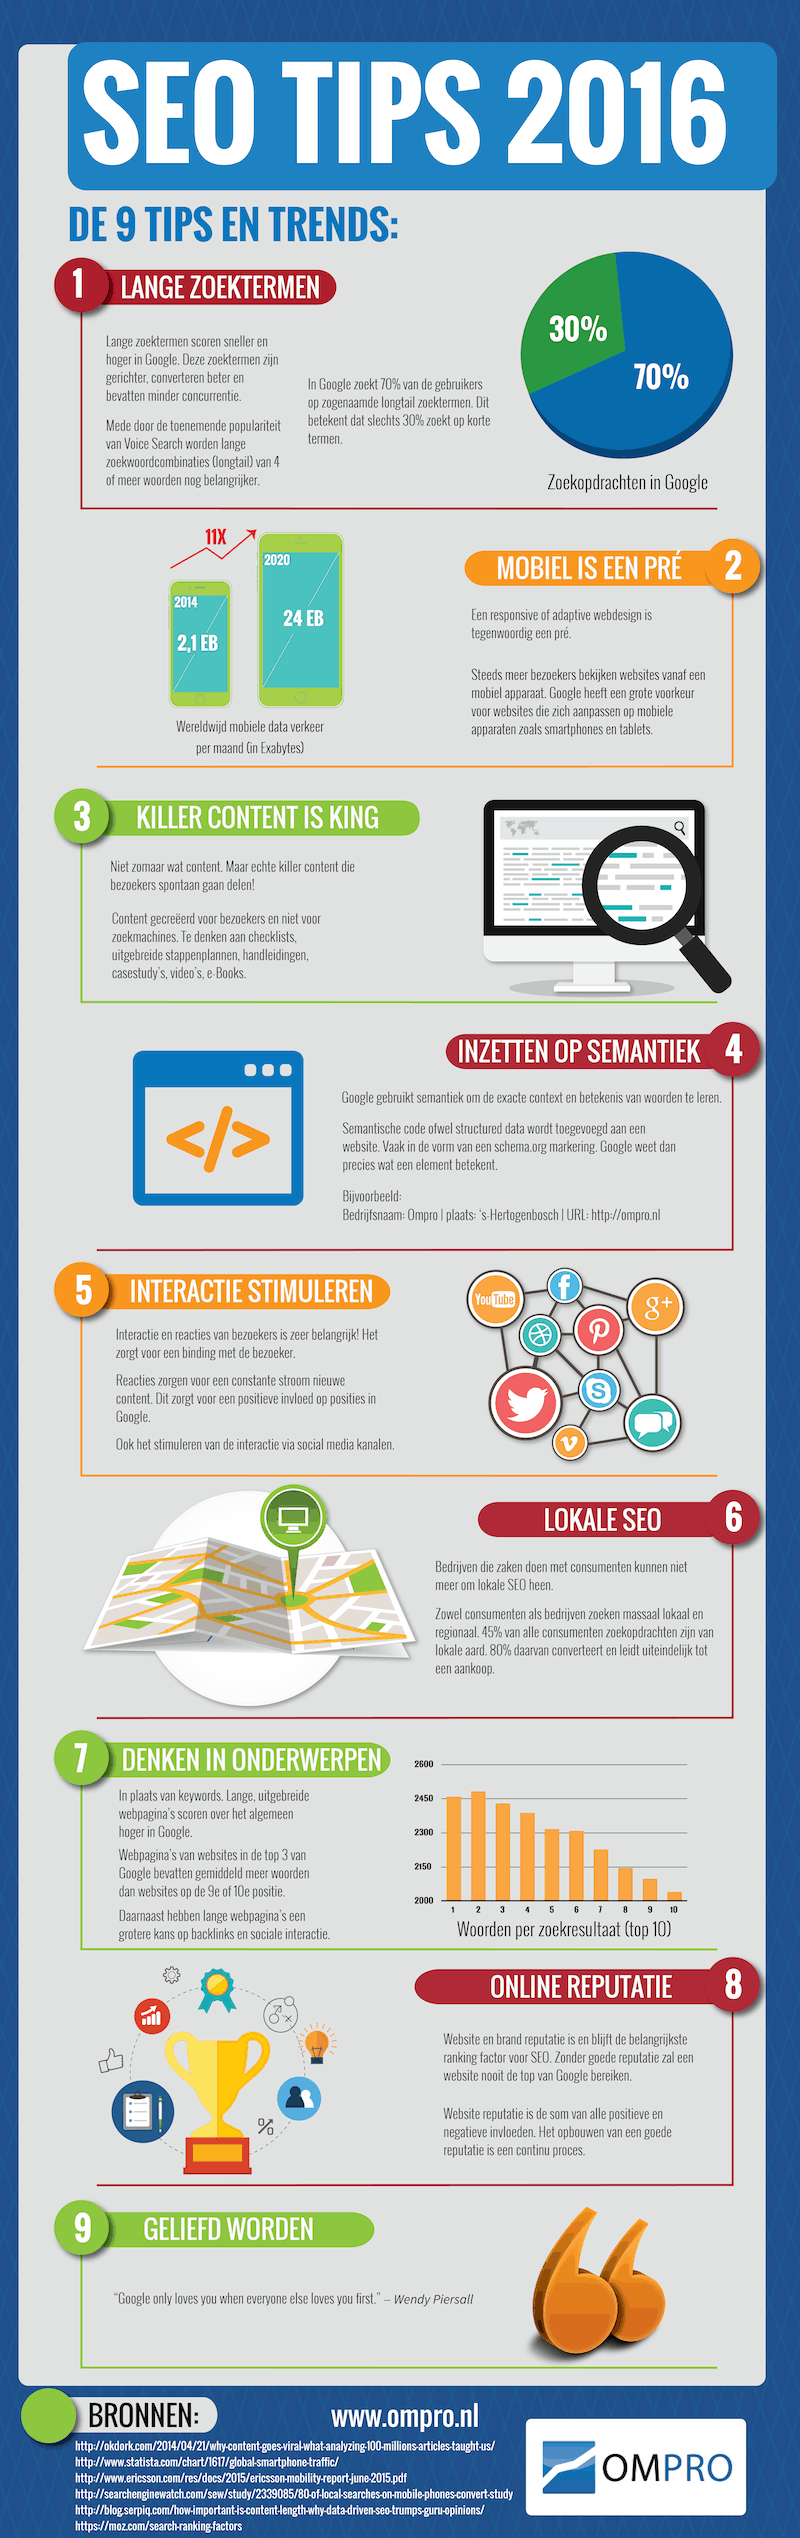 SEO_tips_2016_infographic